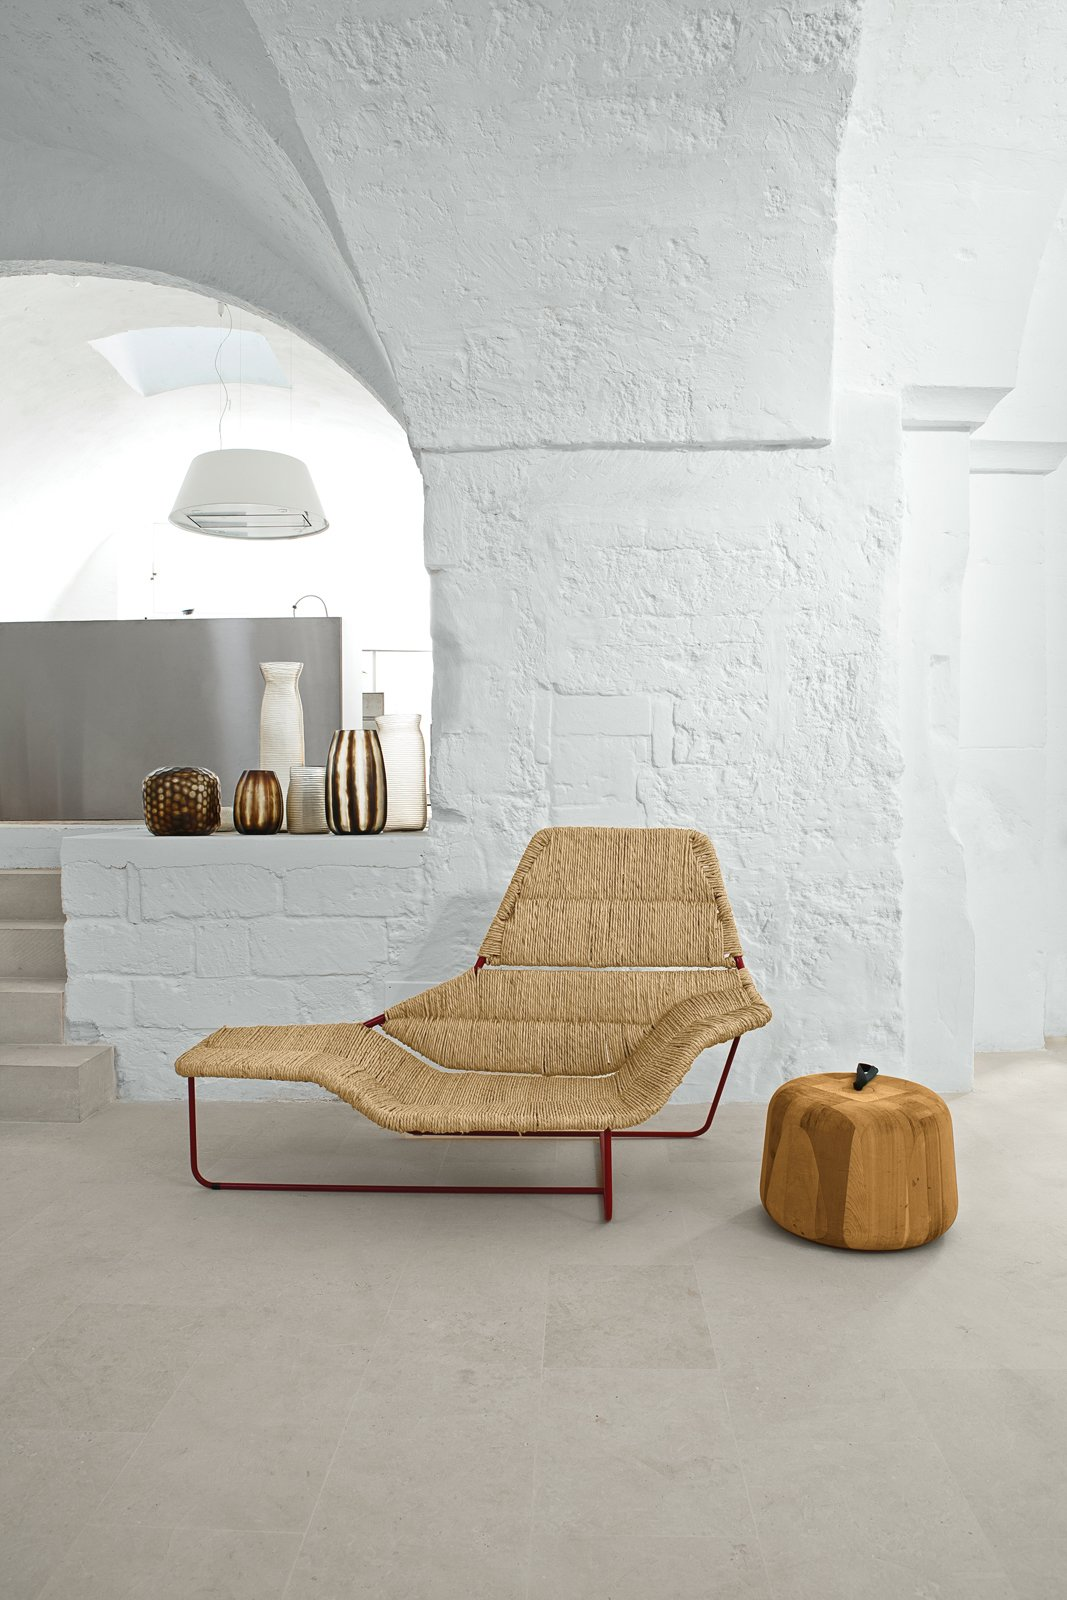 #seatingdesign #cavernous #livingroom #Lama #chaiselounge #ZenApple #sidetable #Guaxs #vases #PalombaResidence #Ludovica+Roberto Palomba  100+ Best Modern Seating Designs by Dwell